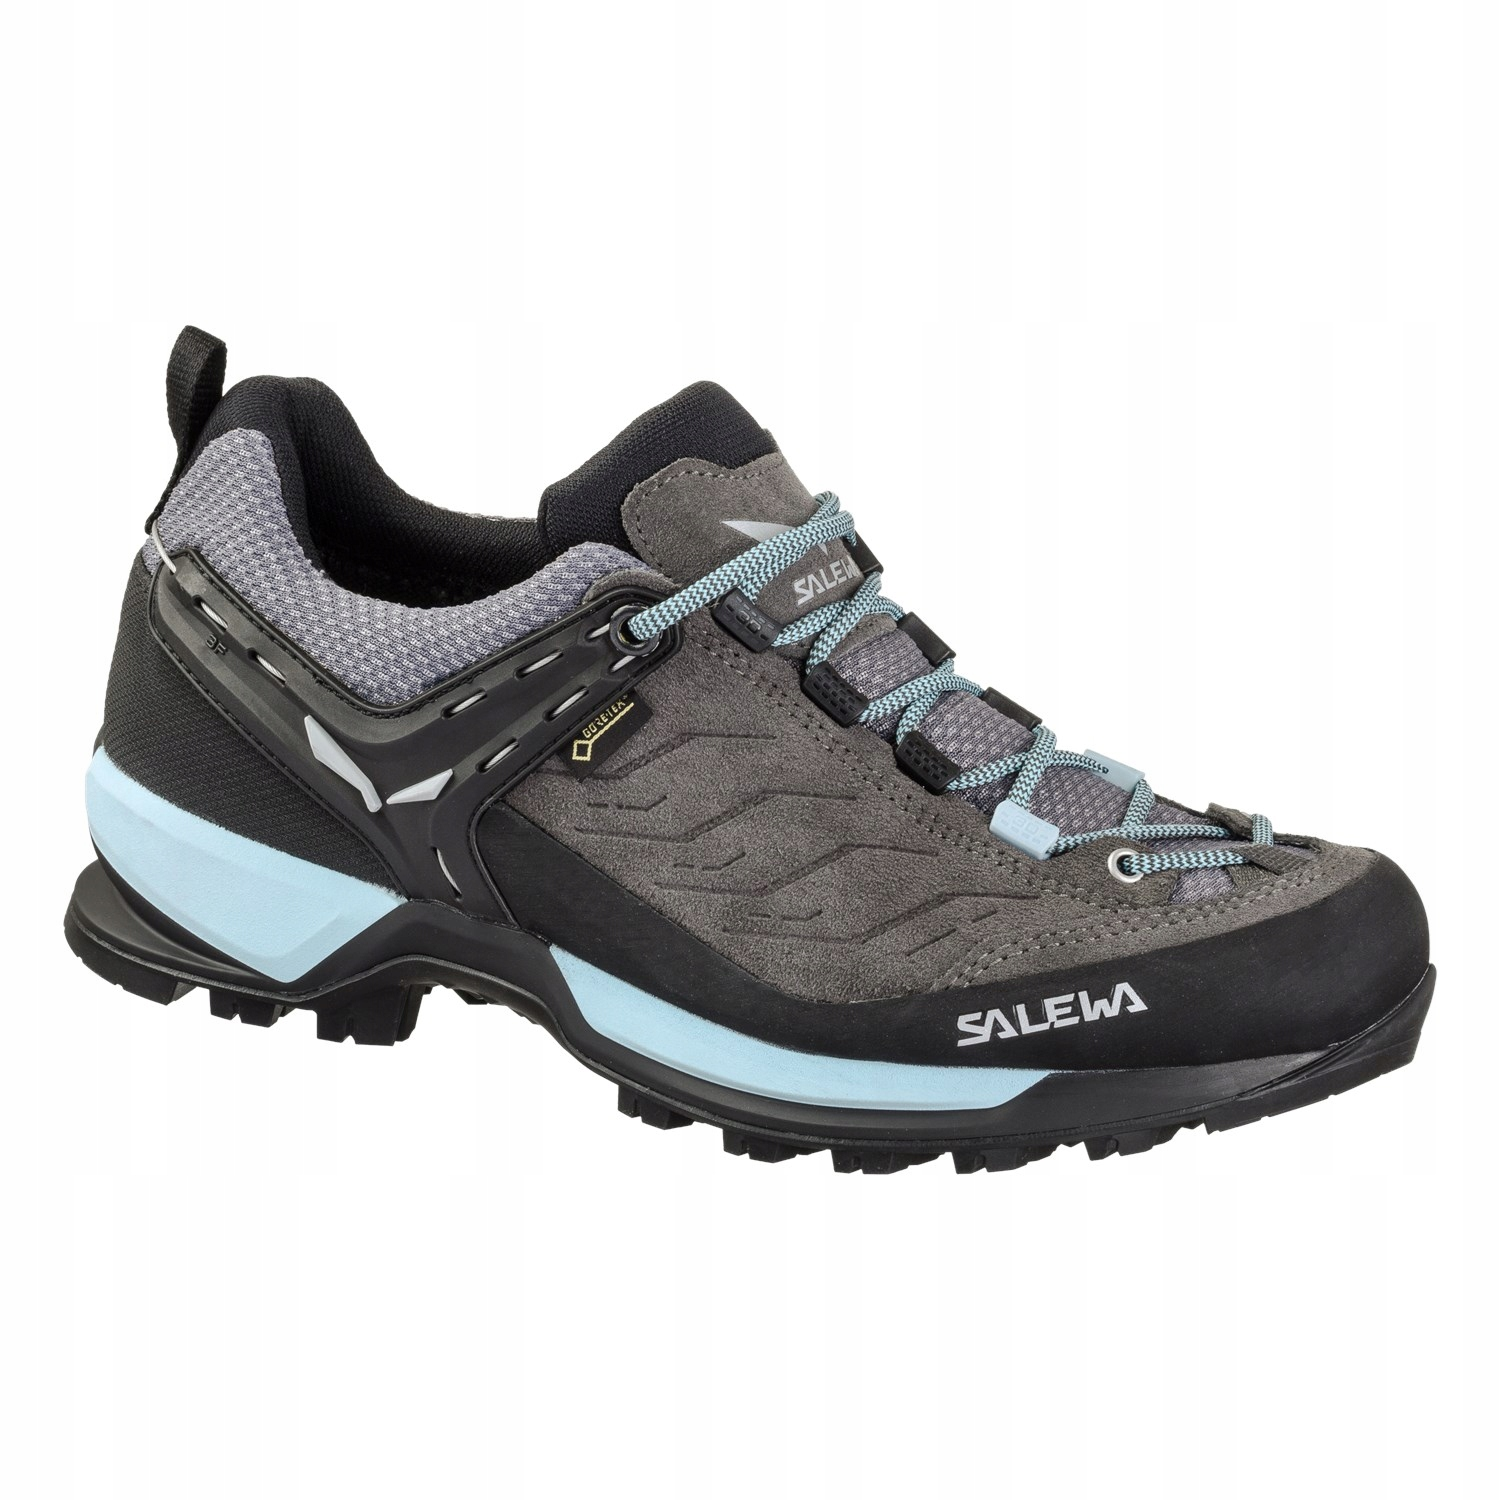 OKAZJA!!! Buty Salewa WS Mountain Trainer GTX 39